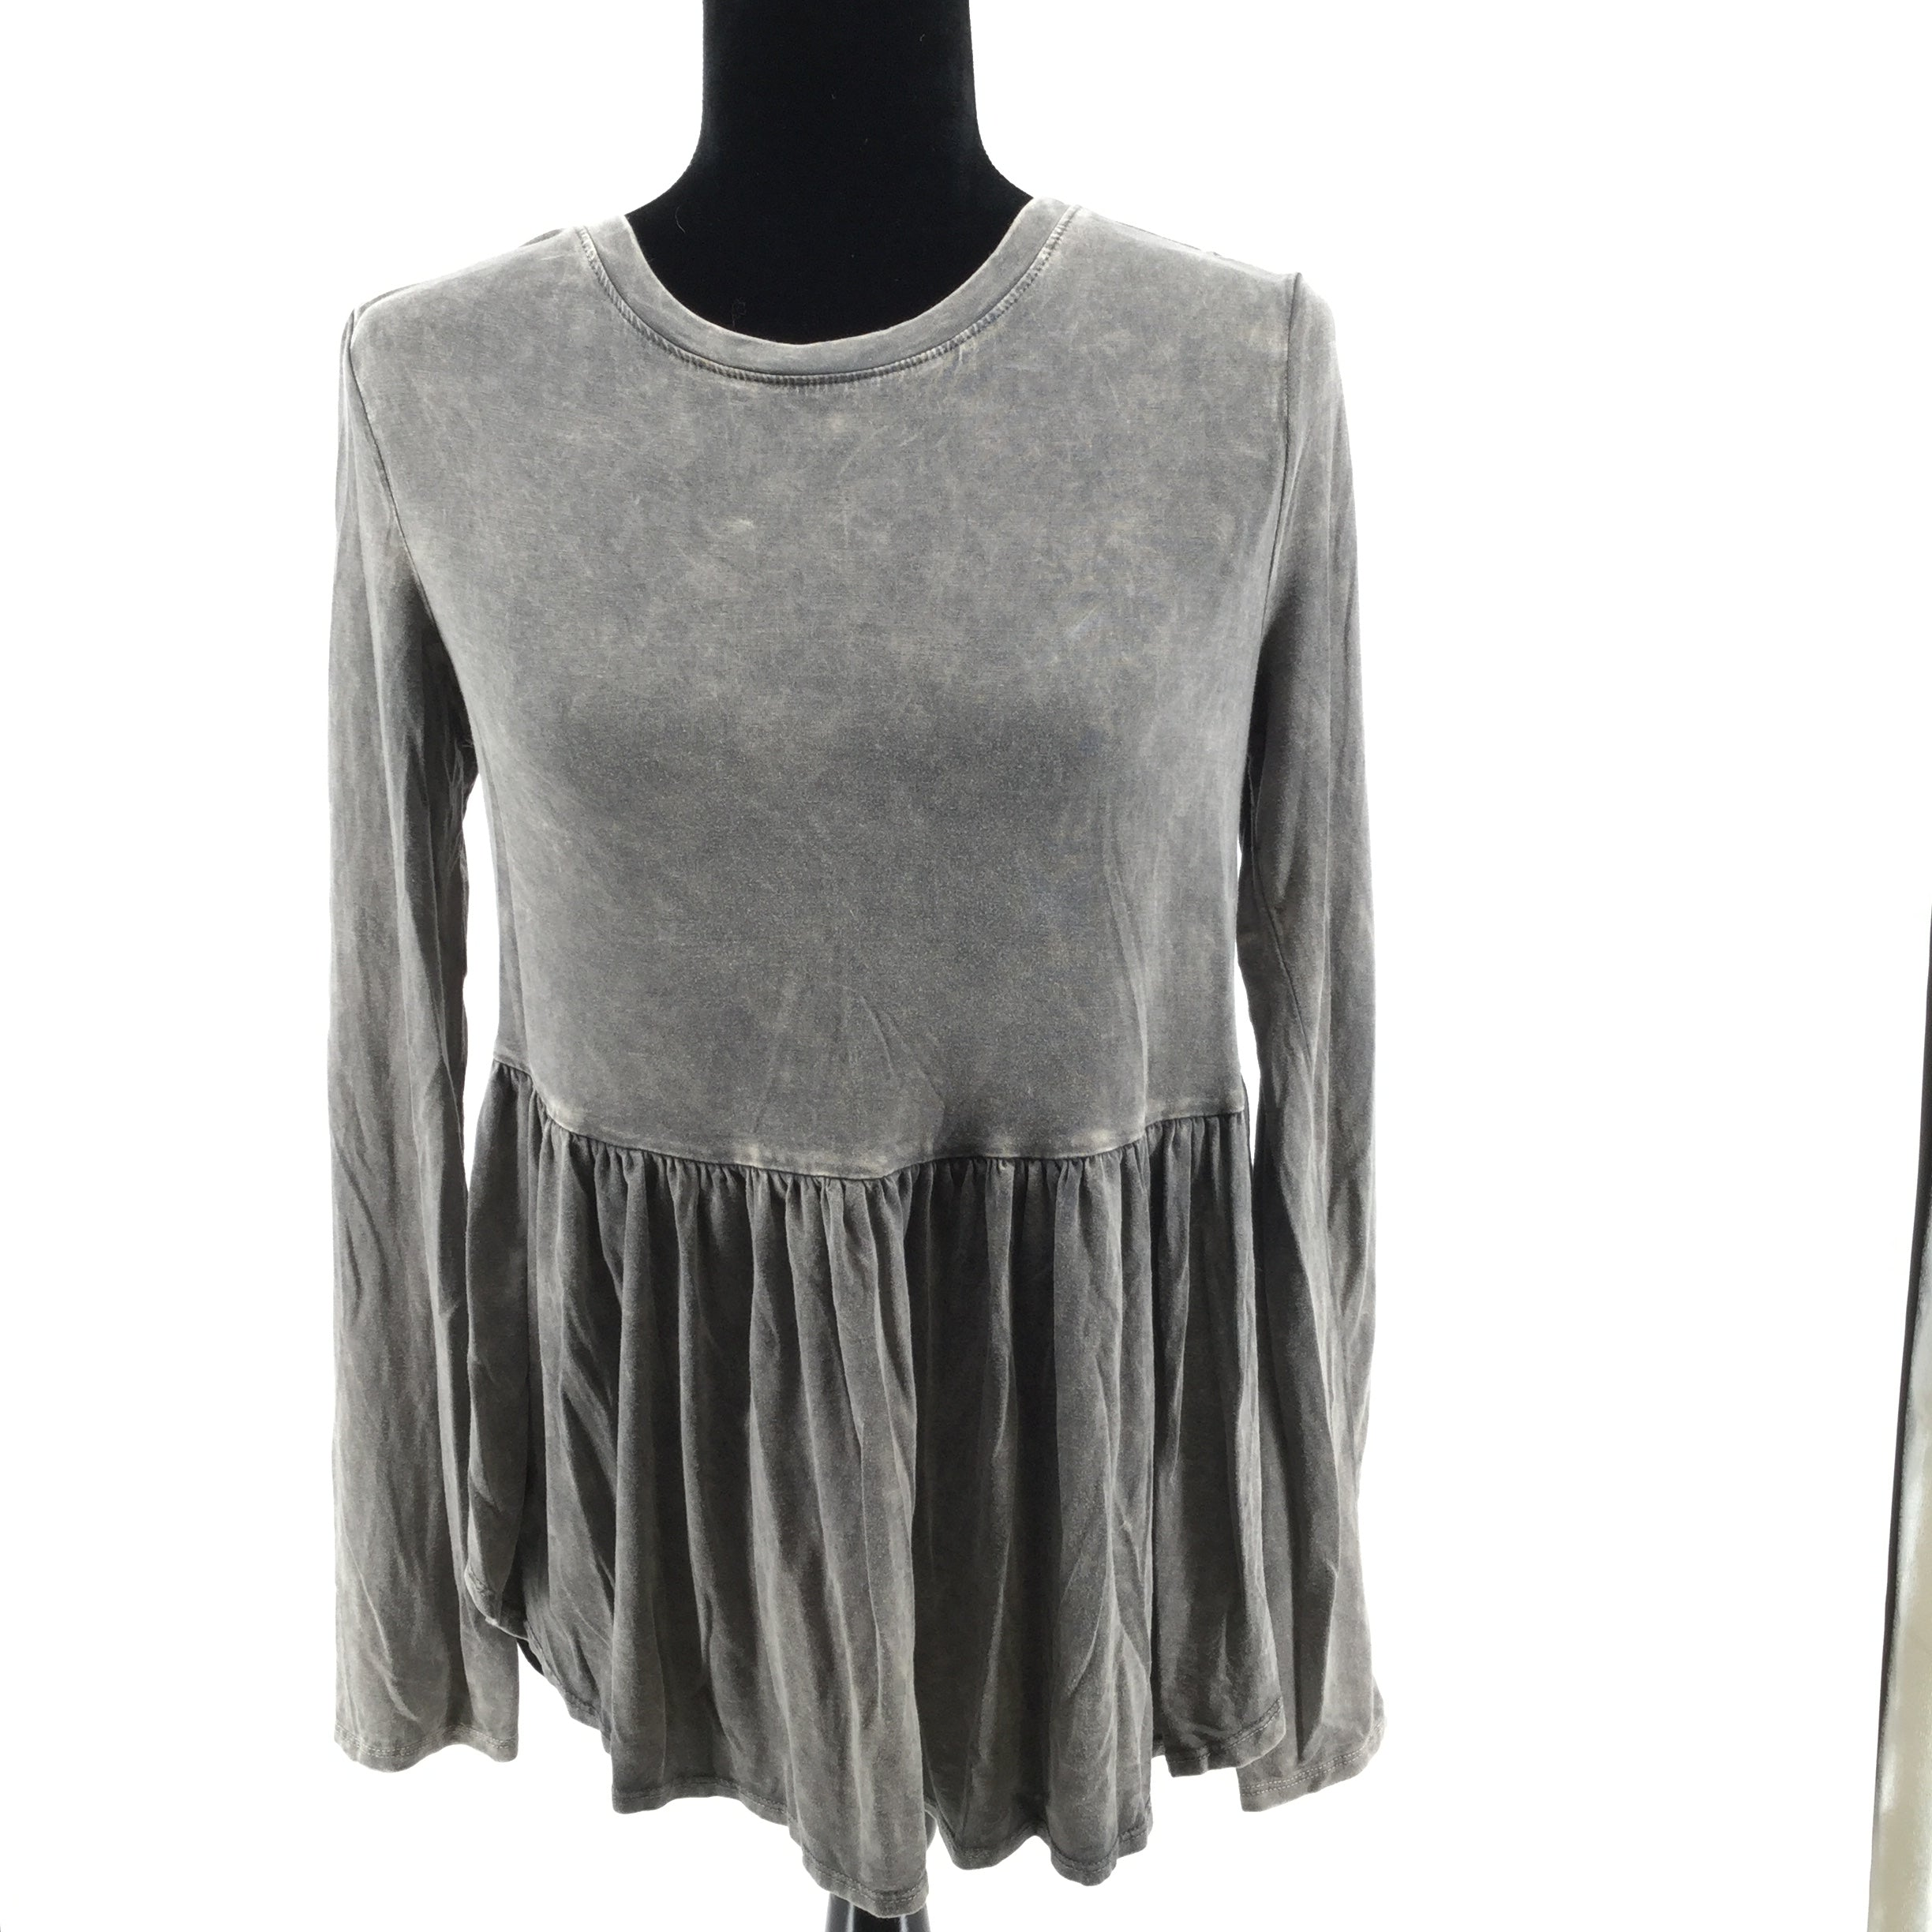 APPAREL,TOPS - LONG SLEEVE GARMENT DYED TOP WITH BOTTOM RUFFLE AND SLITS ON THE SIDES. GENEROUS FIT.